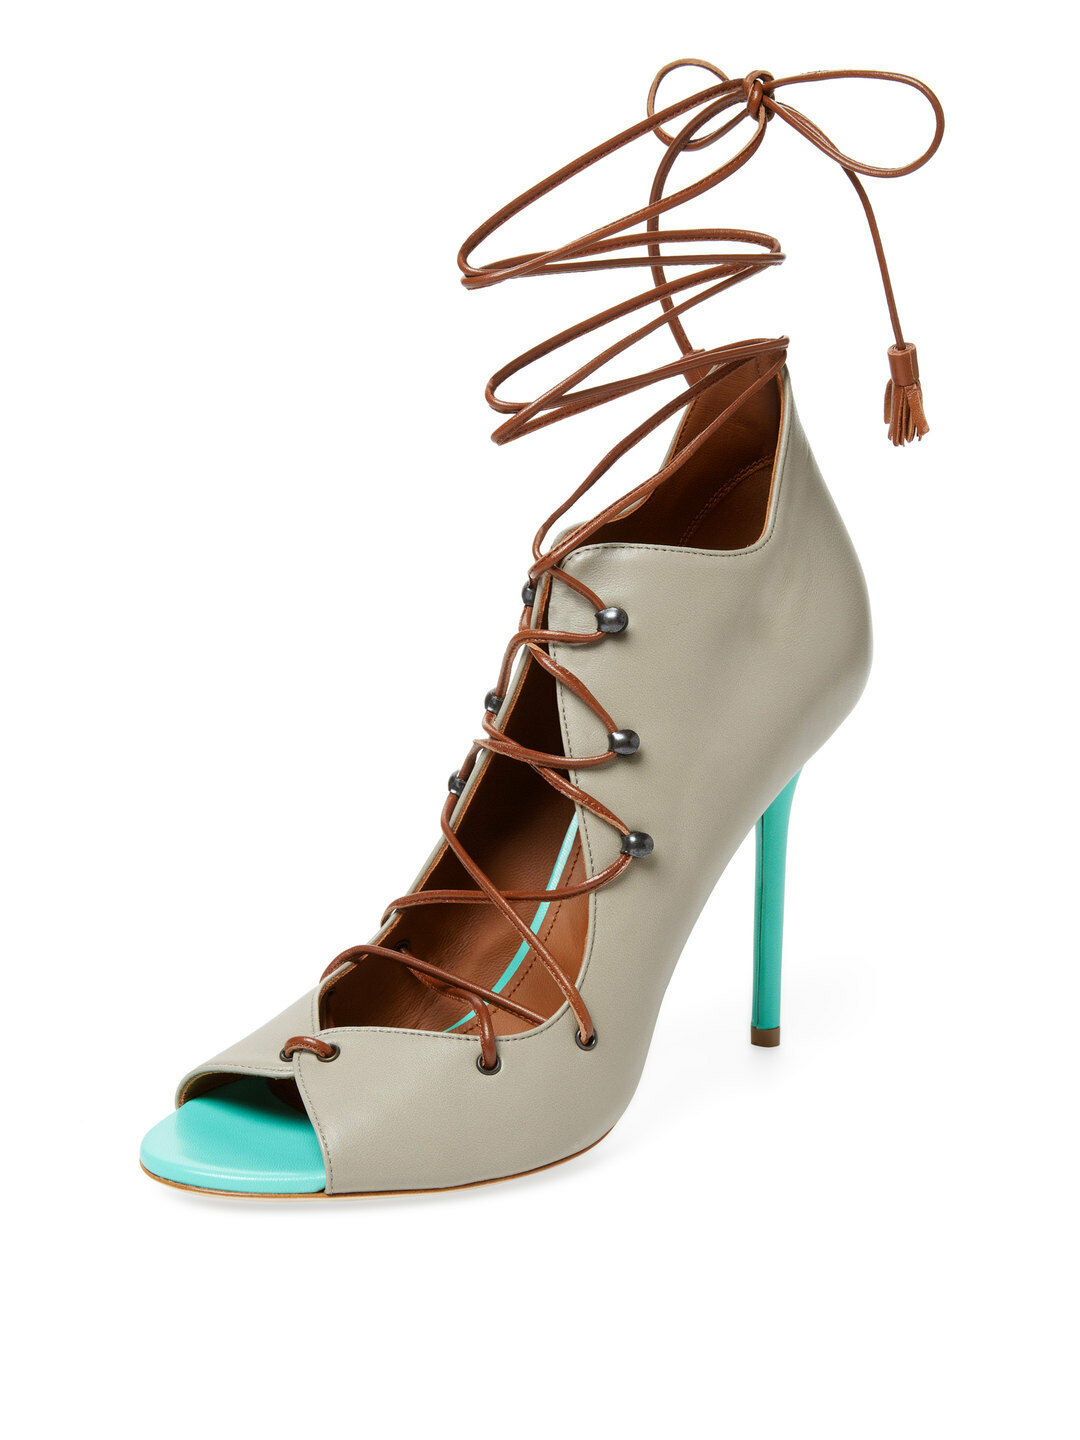 New malone souliers souliers souliers Savannah Lace-up Vamp sandals larice heels zapatos Stiletto 41 08b45d